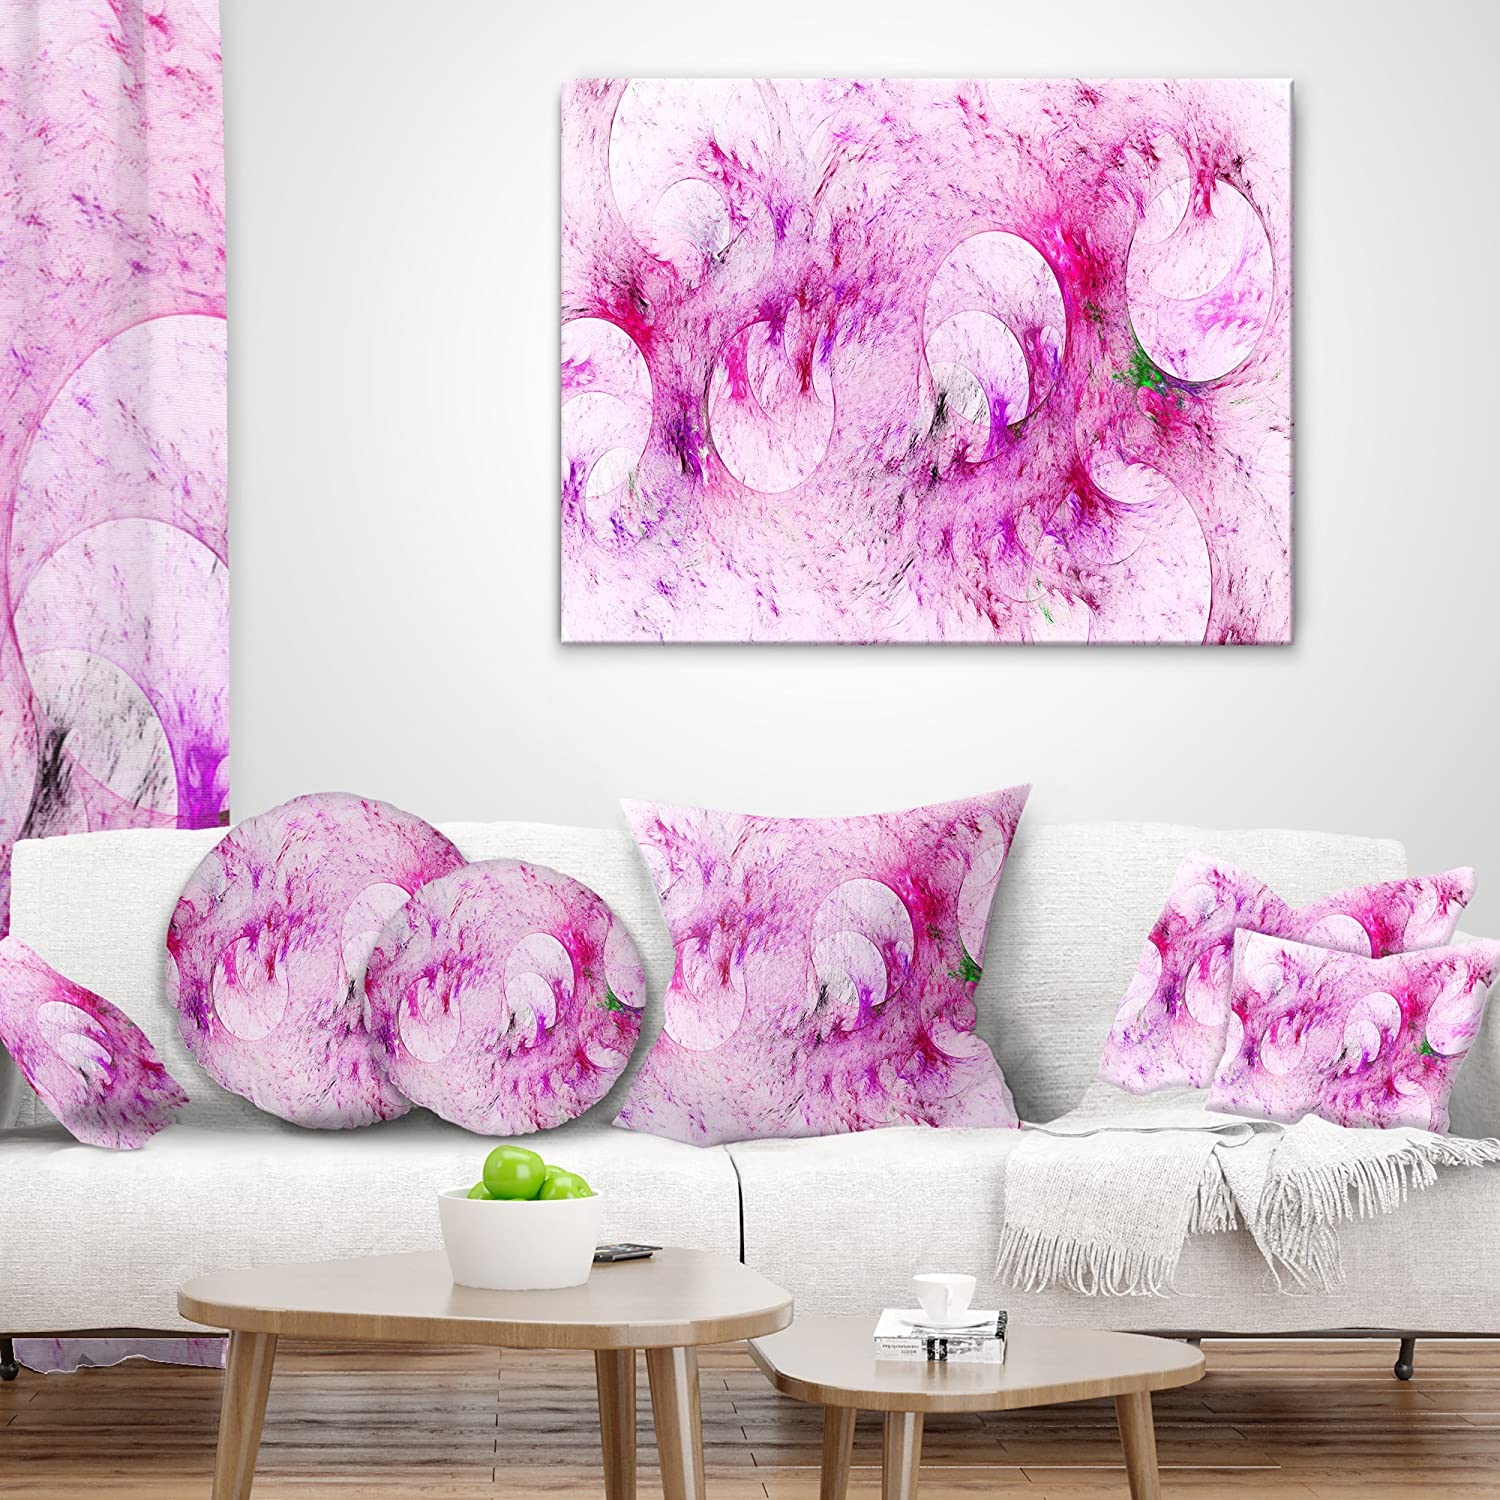 Throw Pillow x 16 in Designart CU16202-16-16 Pink White Fractal Glass Texture Abstract Cushion Cover for Living Room Insert Printed On Both Side Sofa